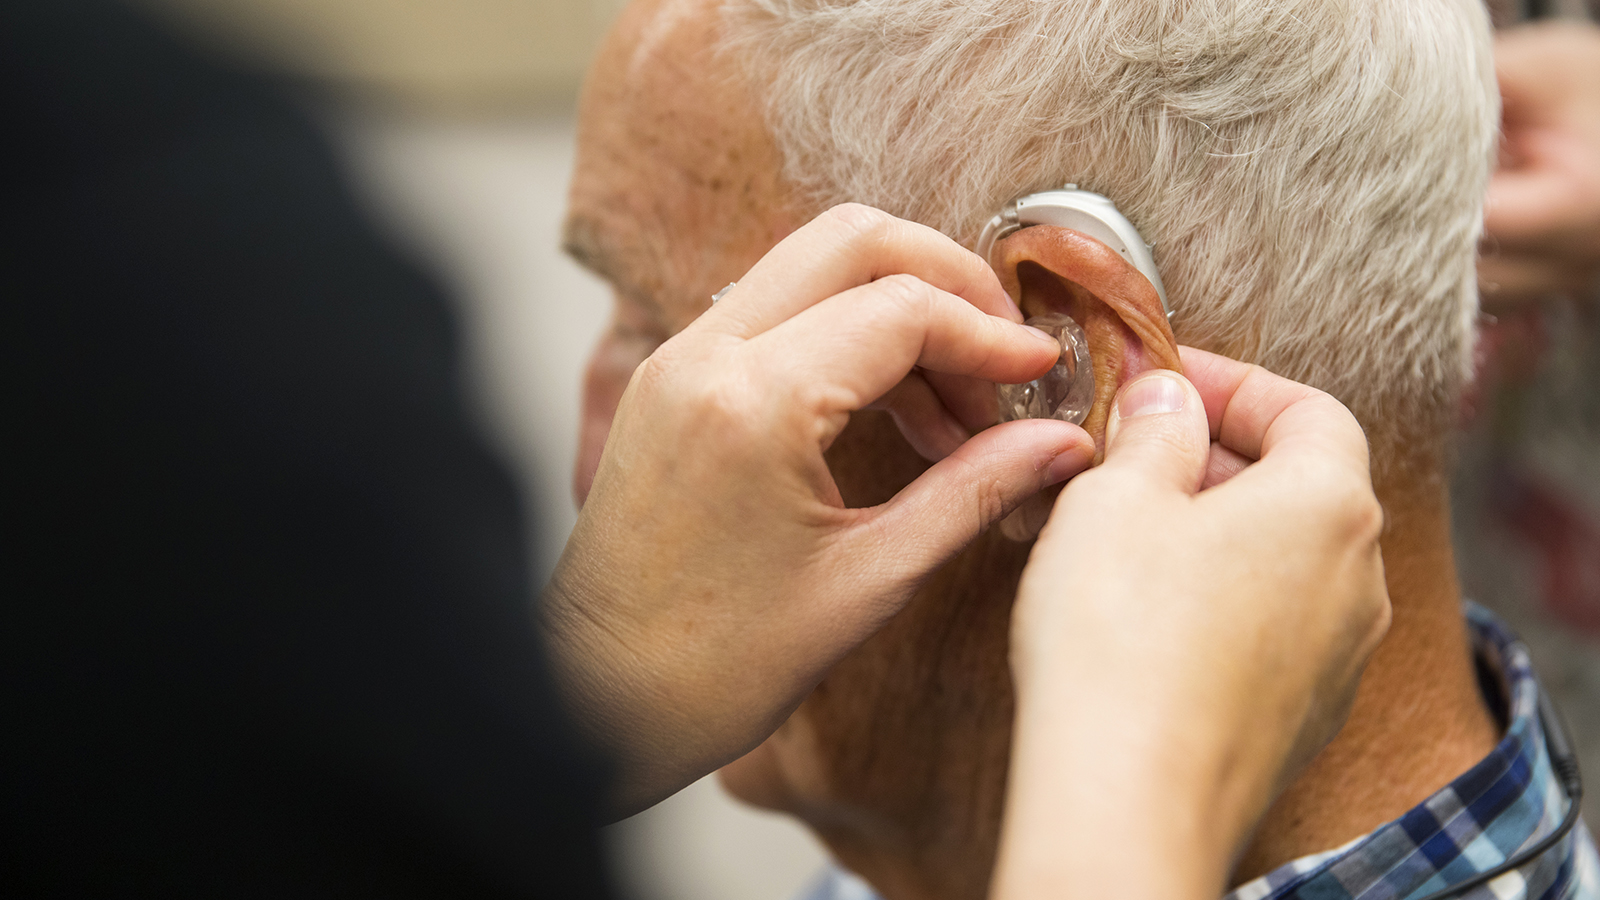 A gentleman is fitted with a hearing aid at the Barkley Speech Language and Hearing Clinic.